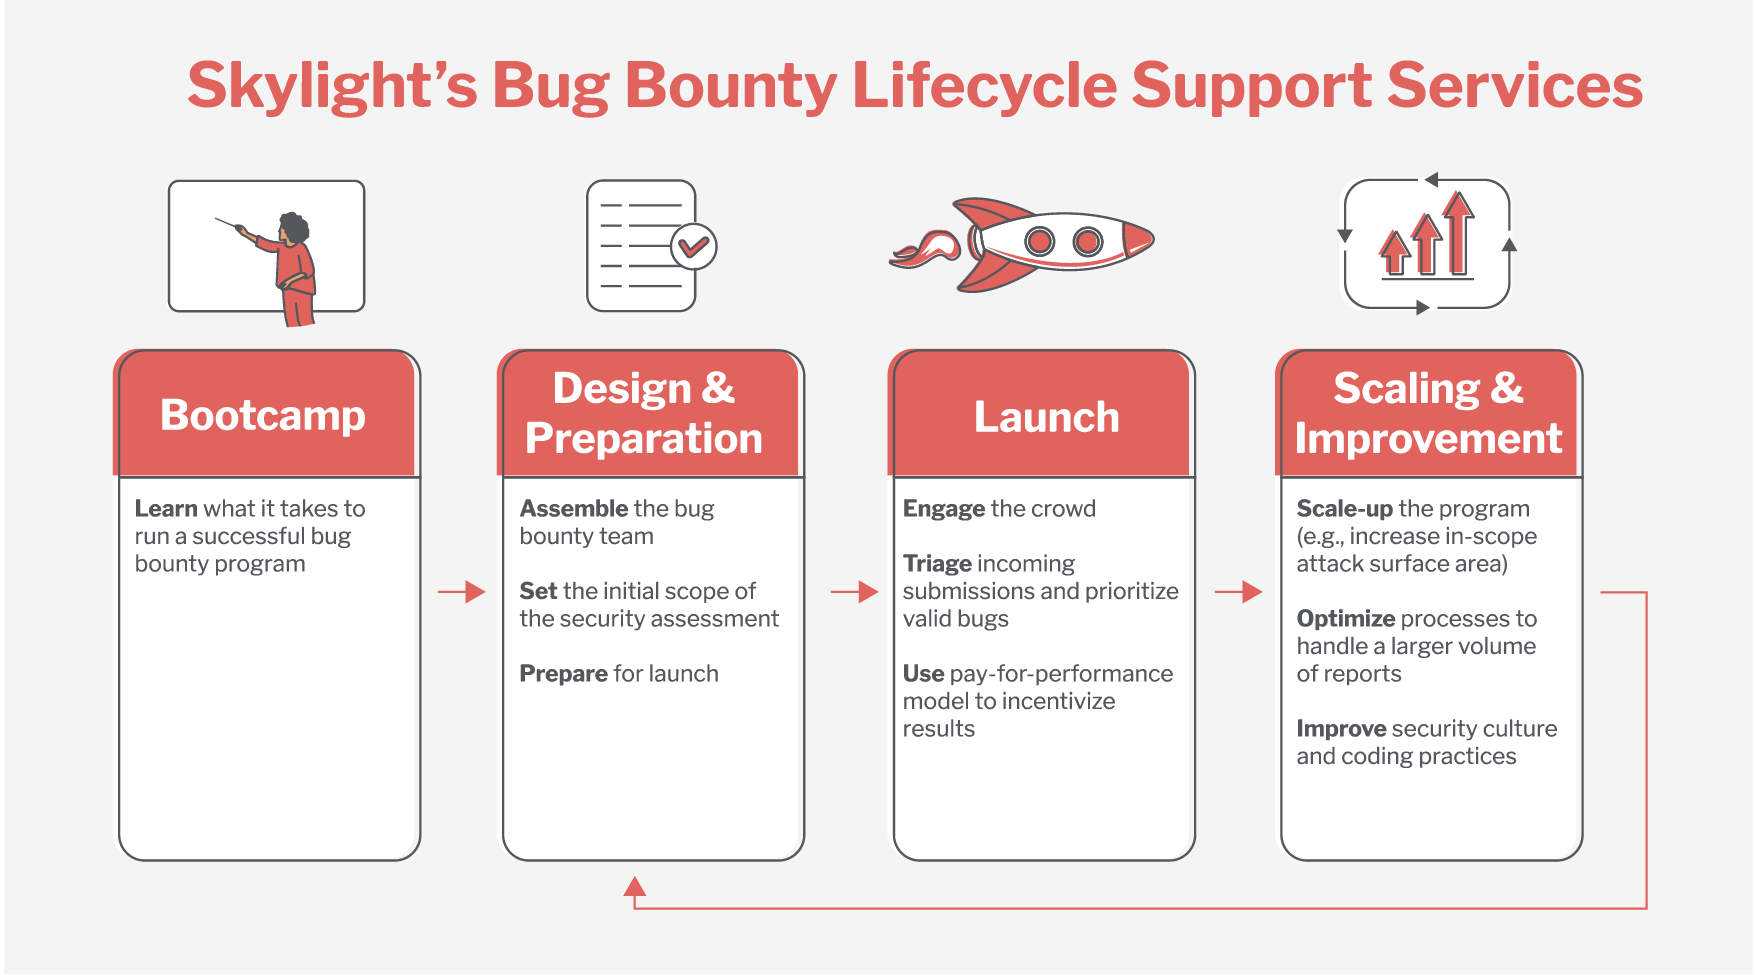 Four phases of Skylight's bug bounty lifecycle support services.